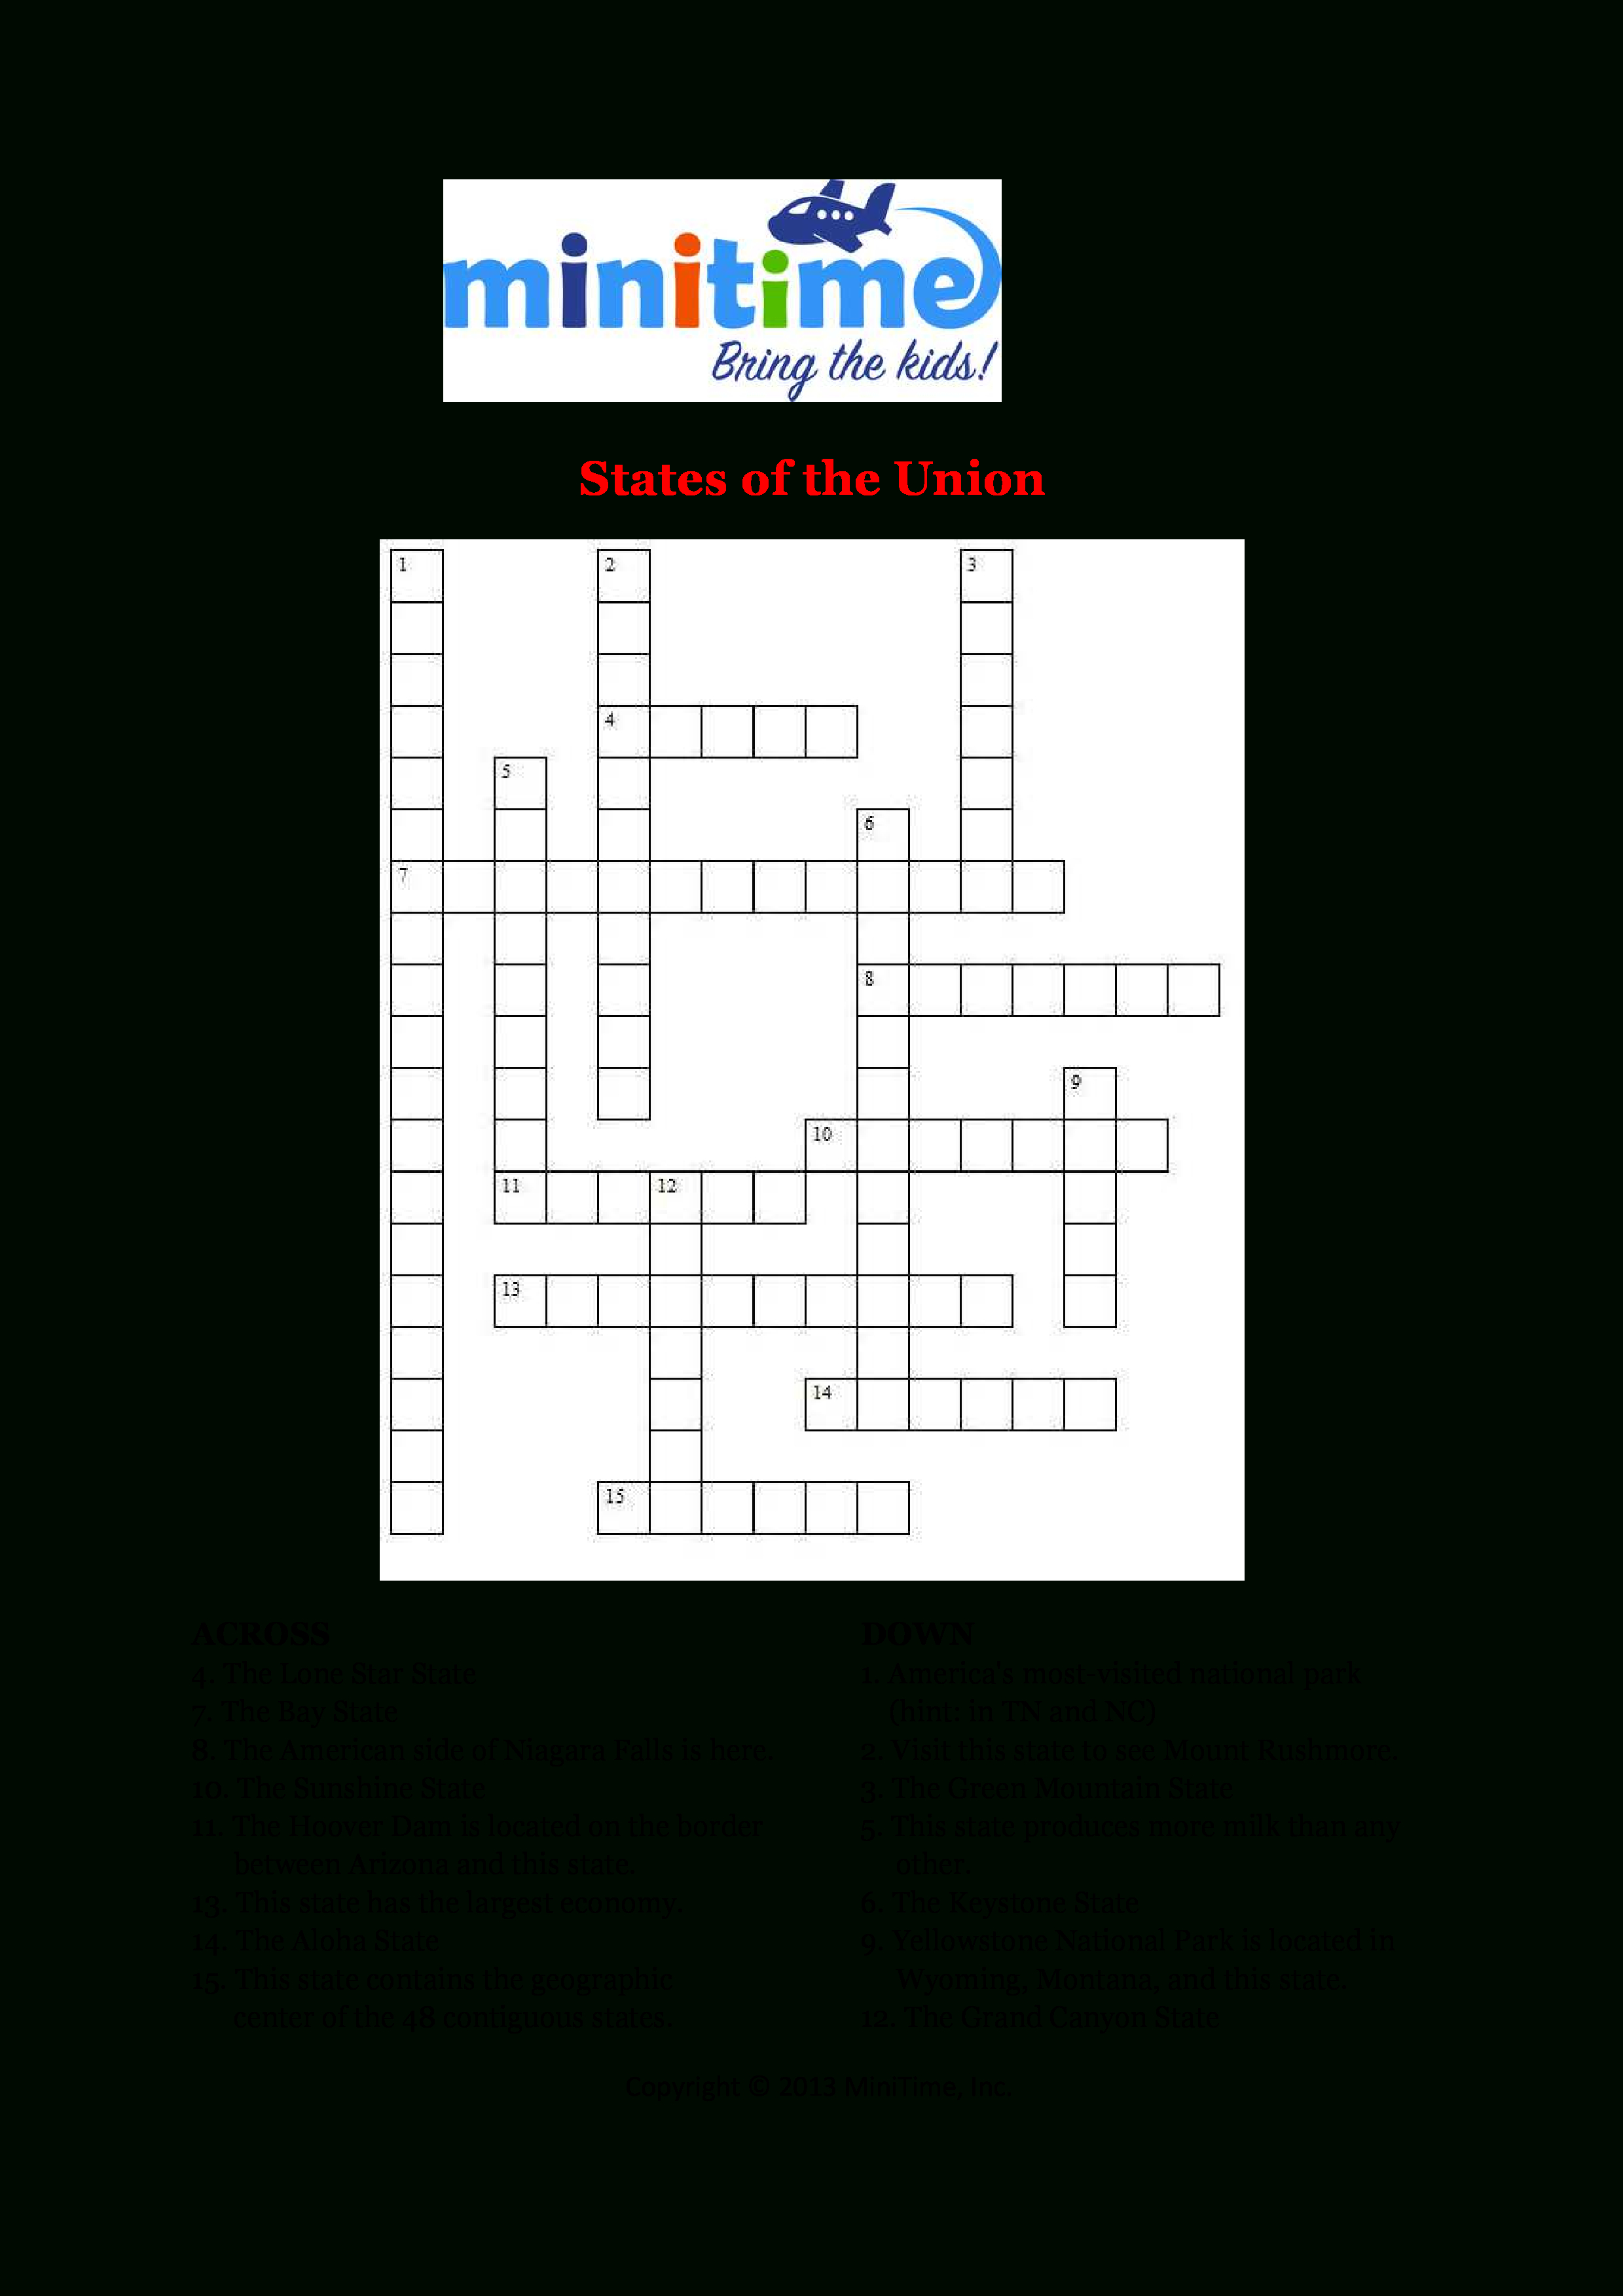 Us States Fun Facts Crossword Puzzles | Free Printable Travel - Printable United States Crossword Puzzle